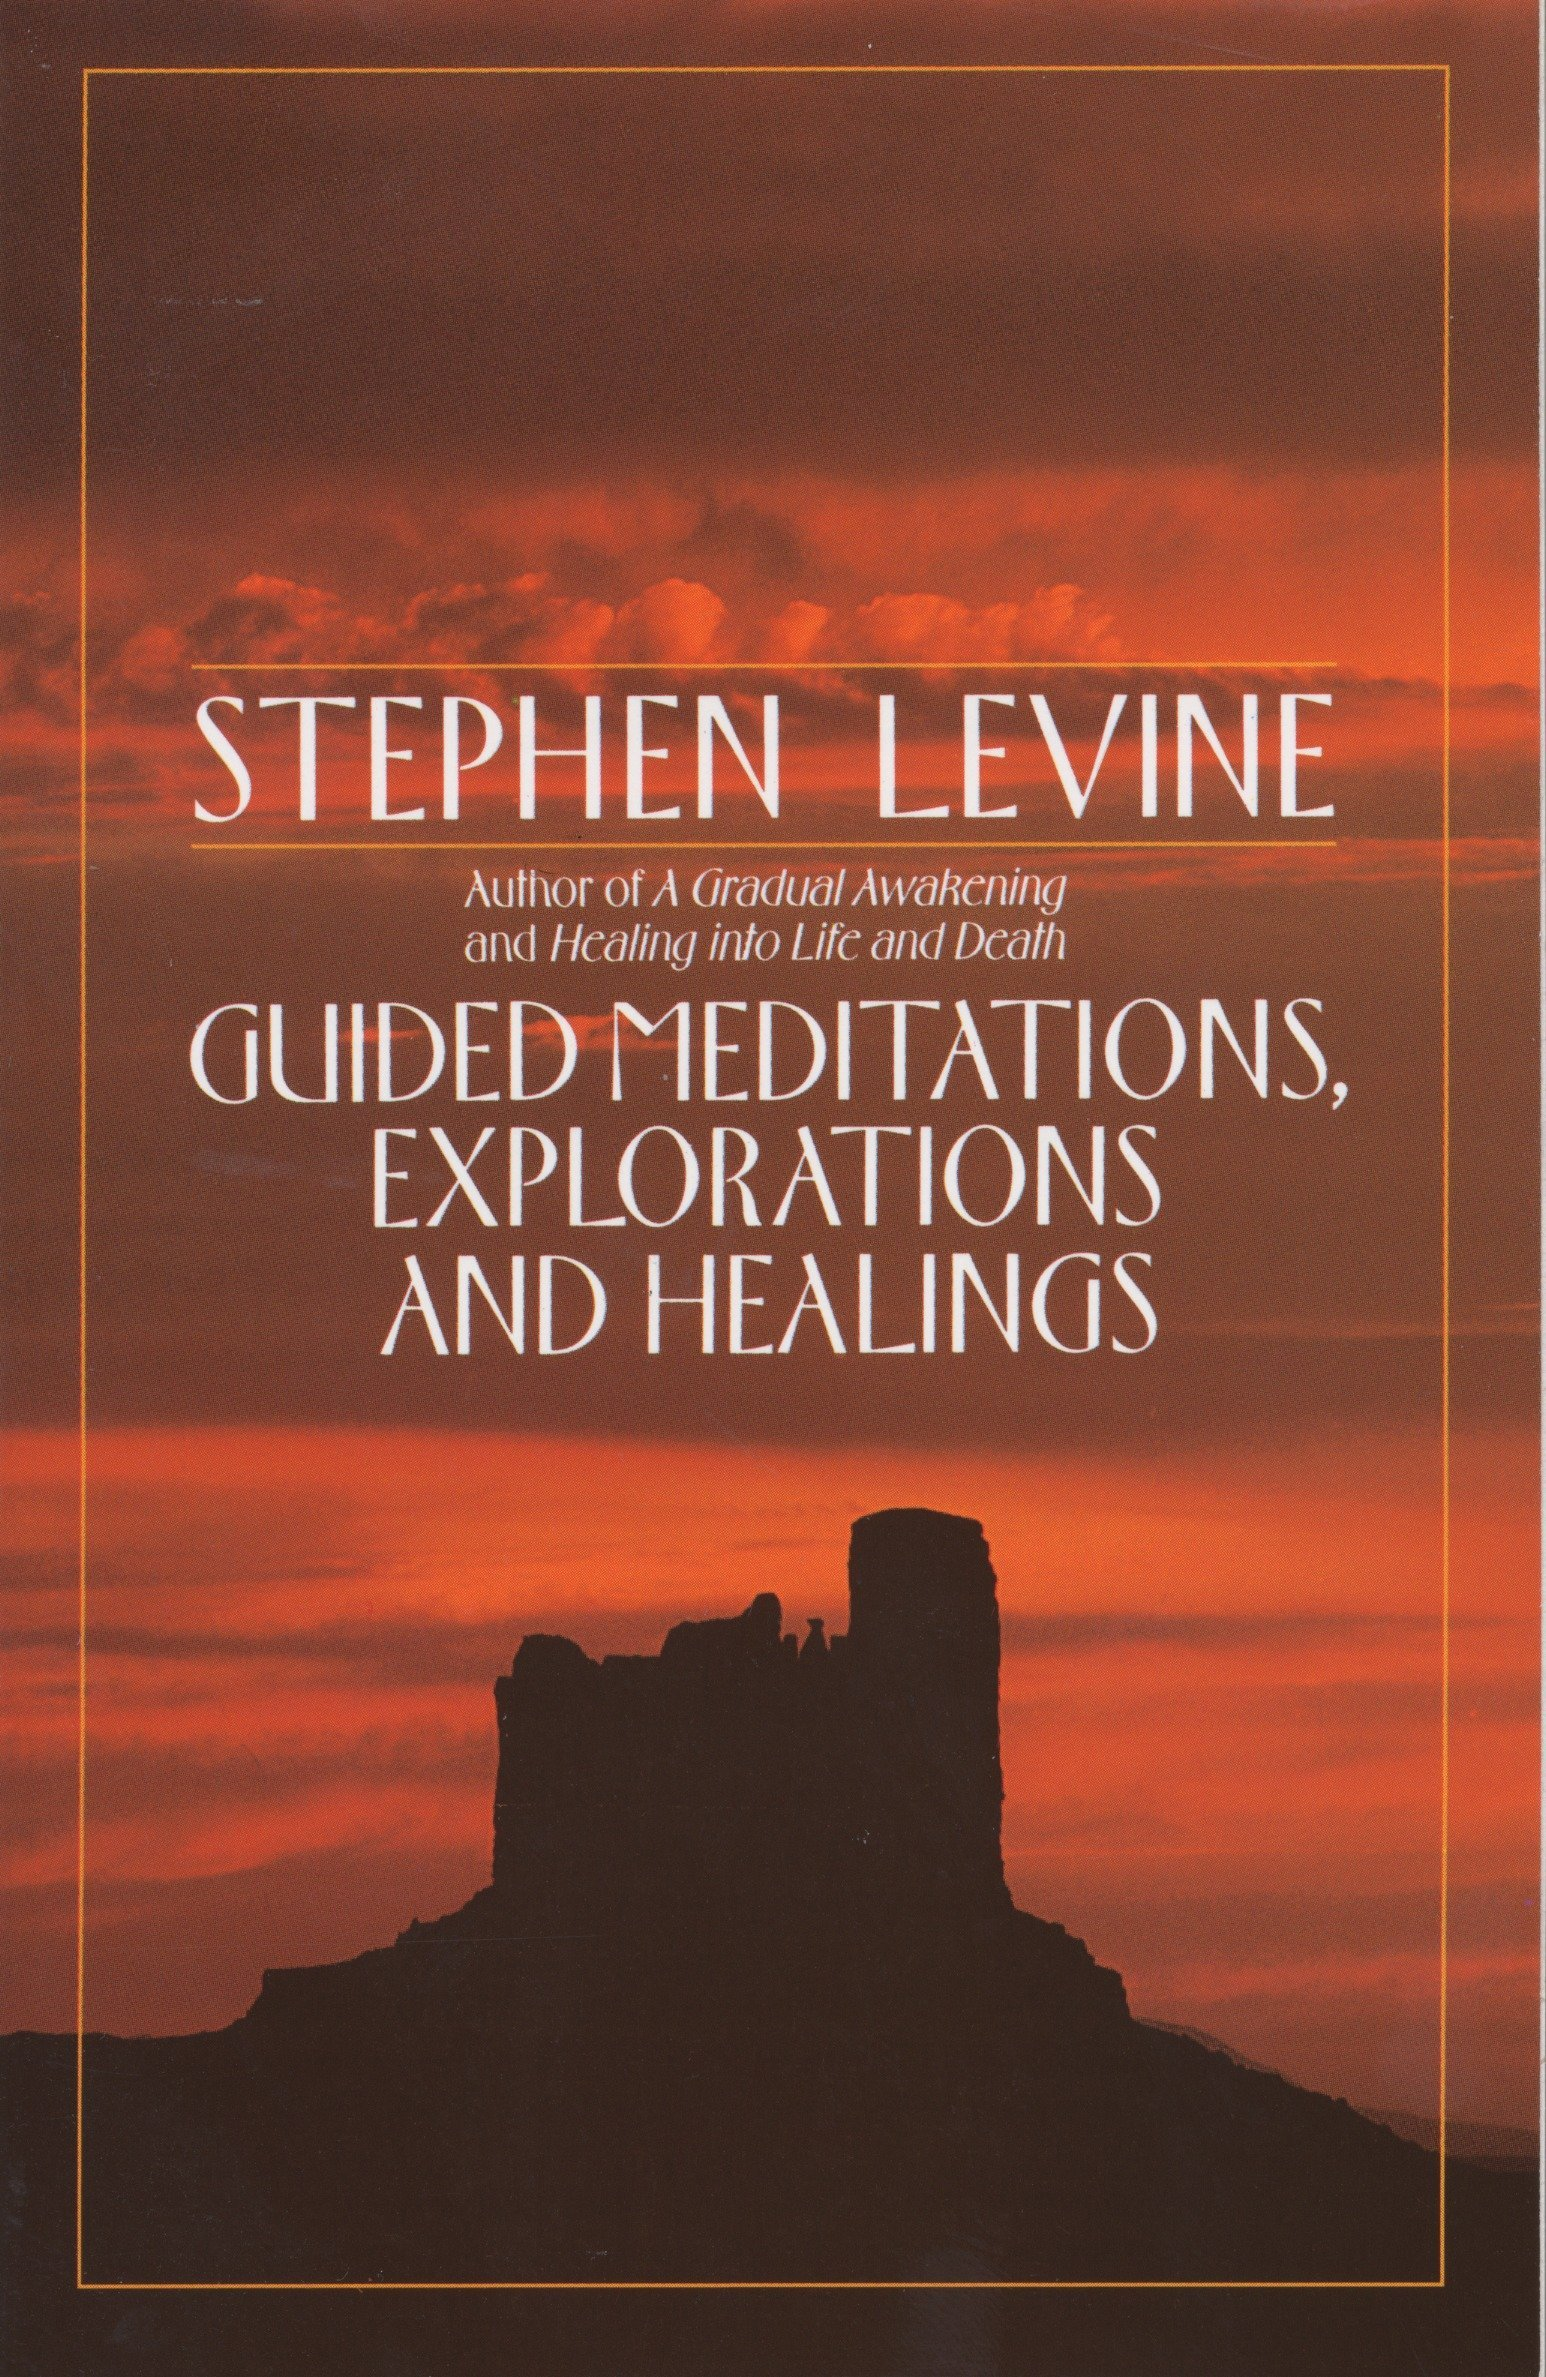 Guided Meditations, Explorations and Healings: Stephen